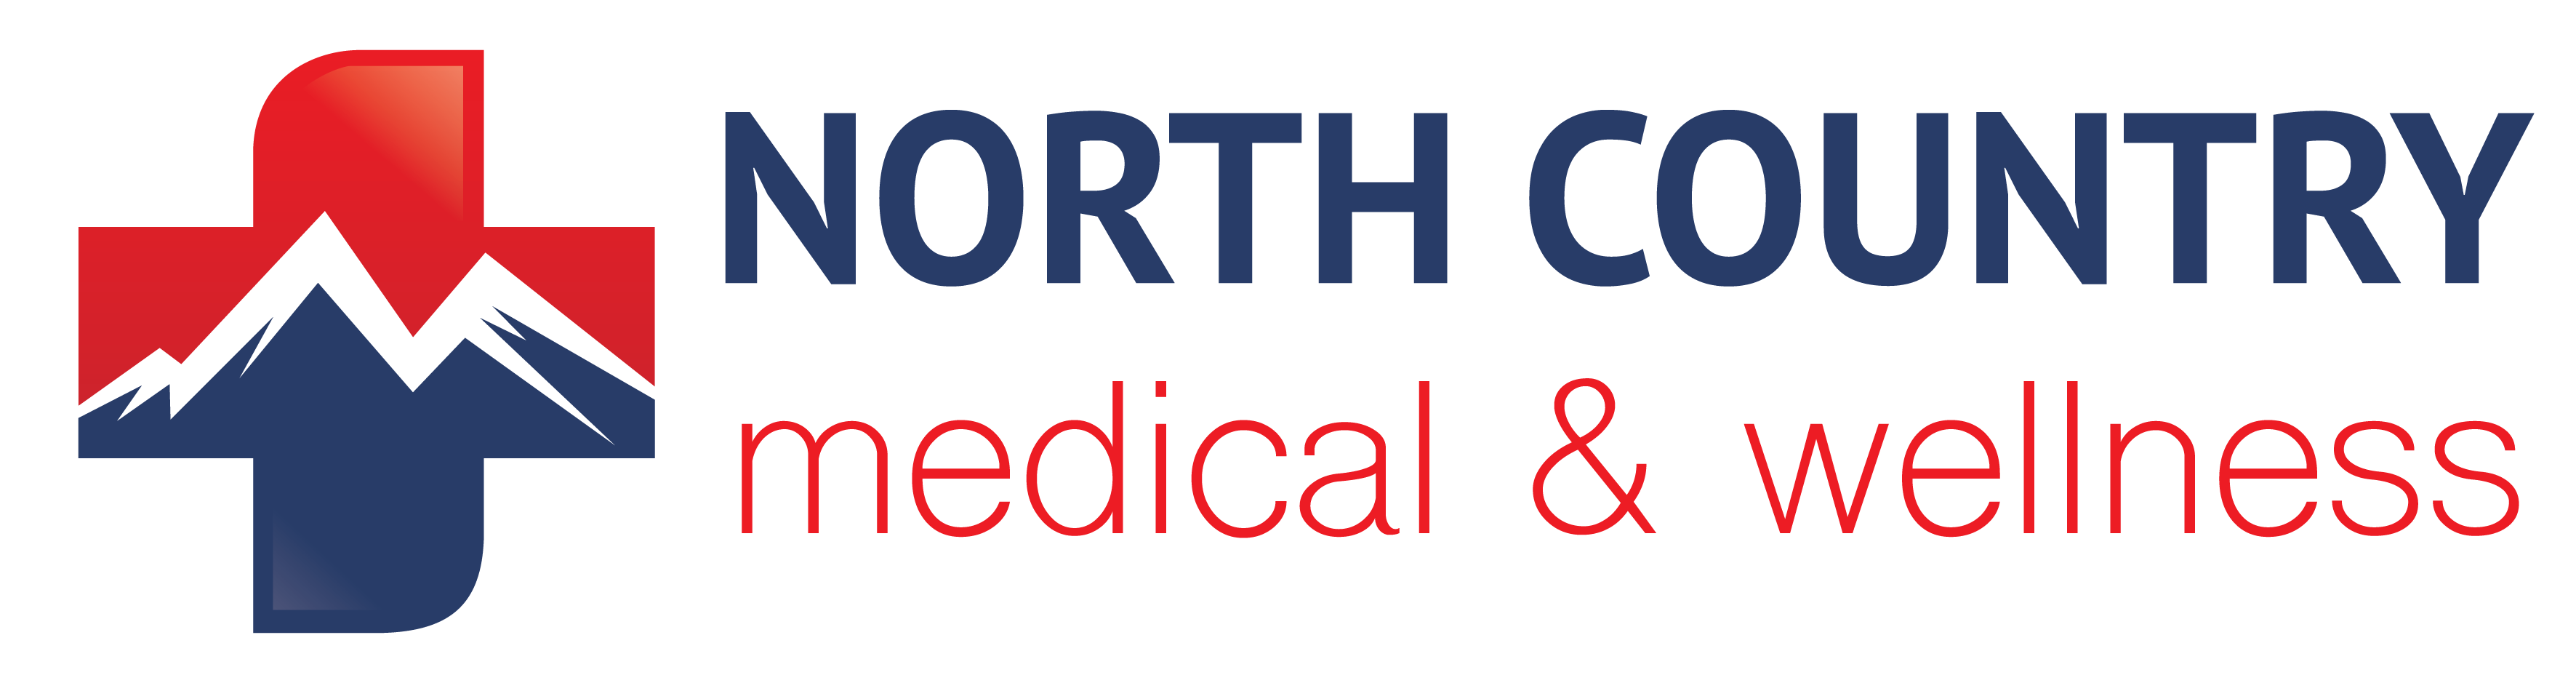 North Country Medical & Wellness